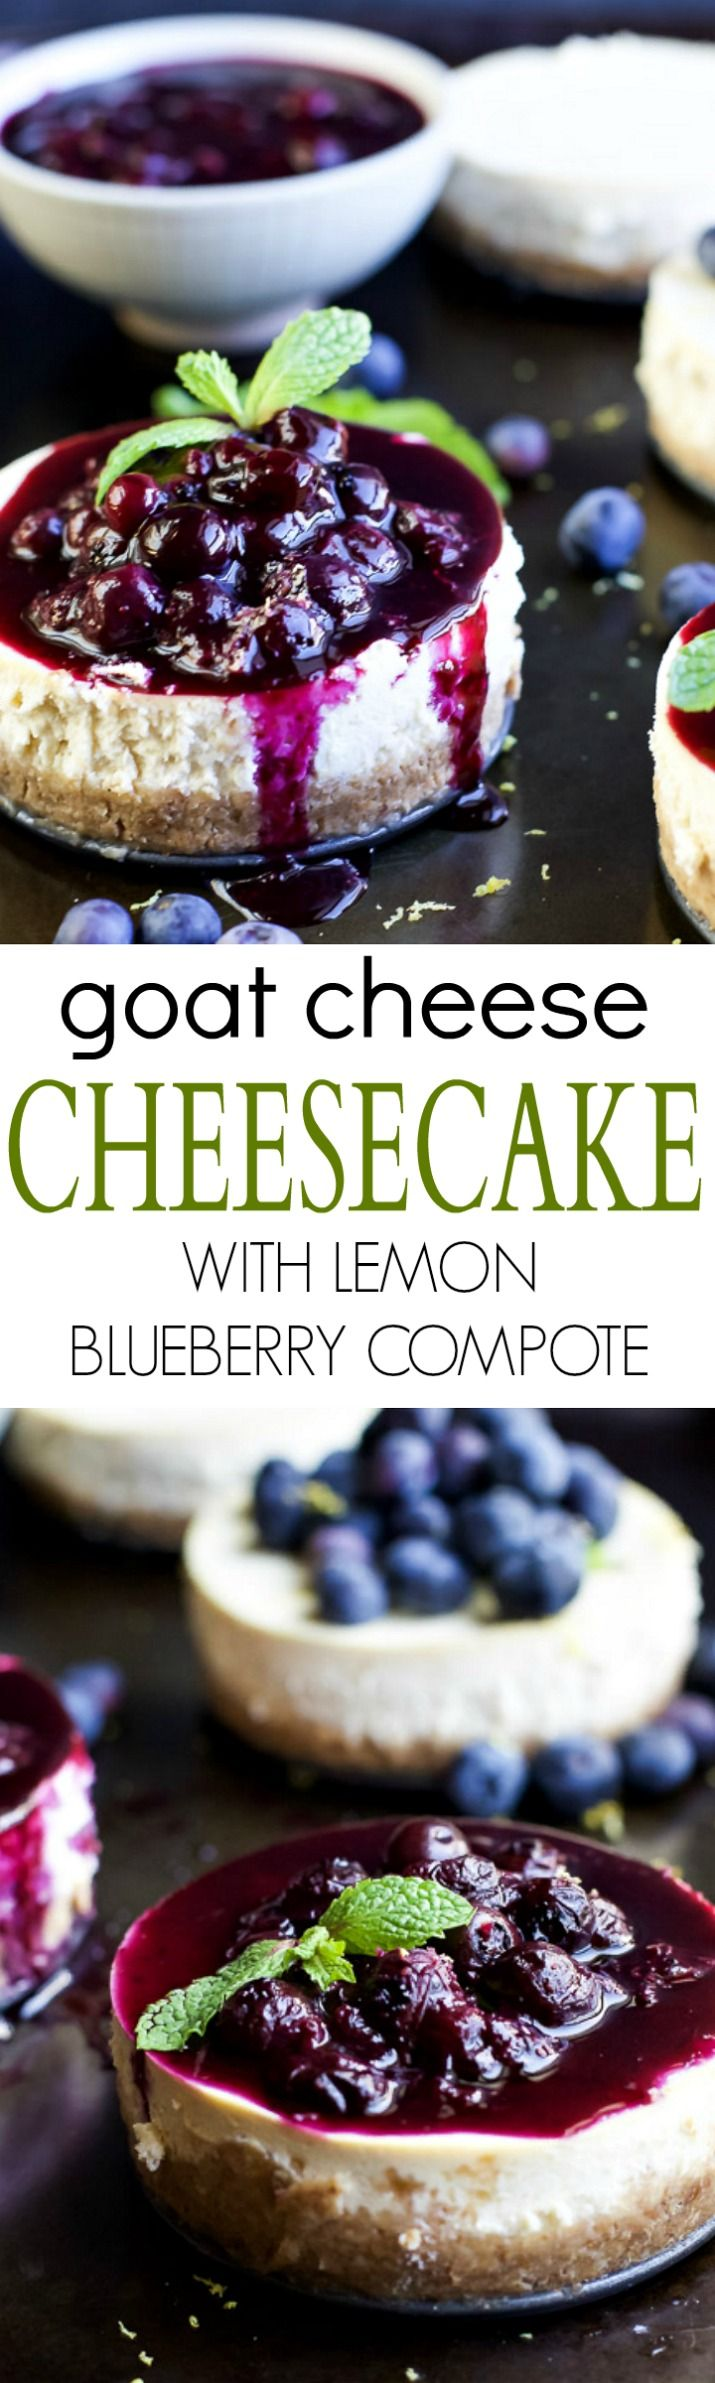 ... cheesecake healthy dessert recipes goat cheese cheesecake recipe goat